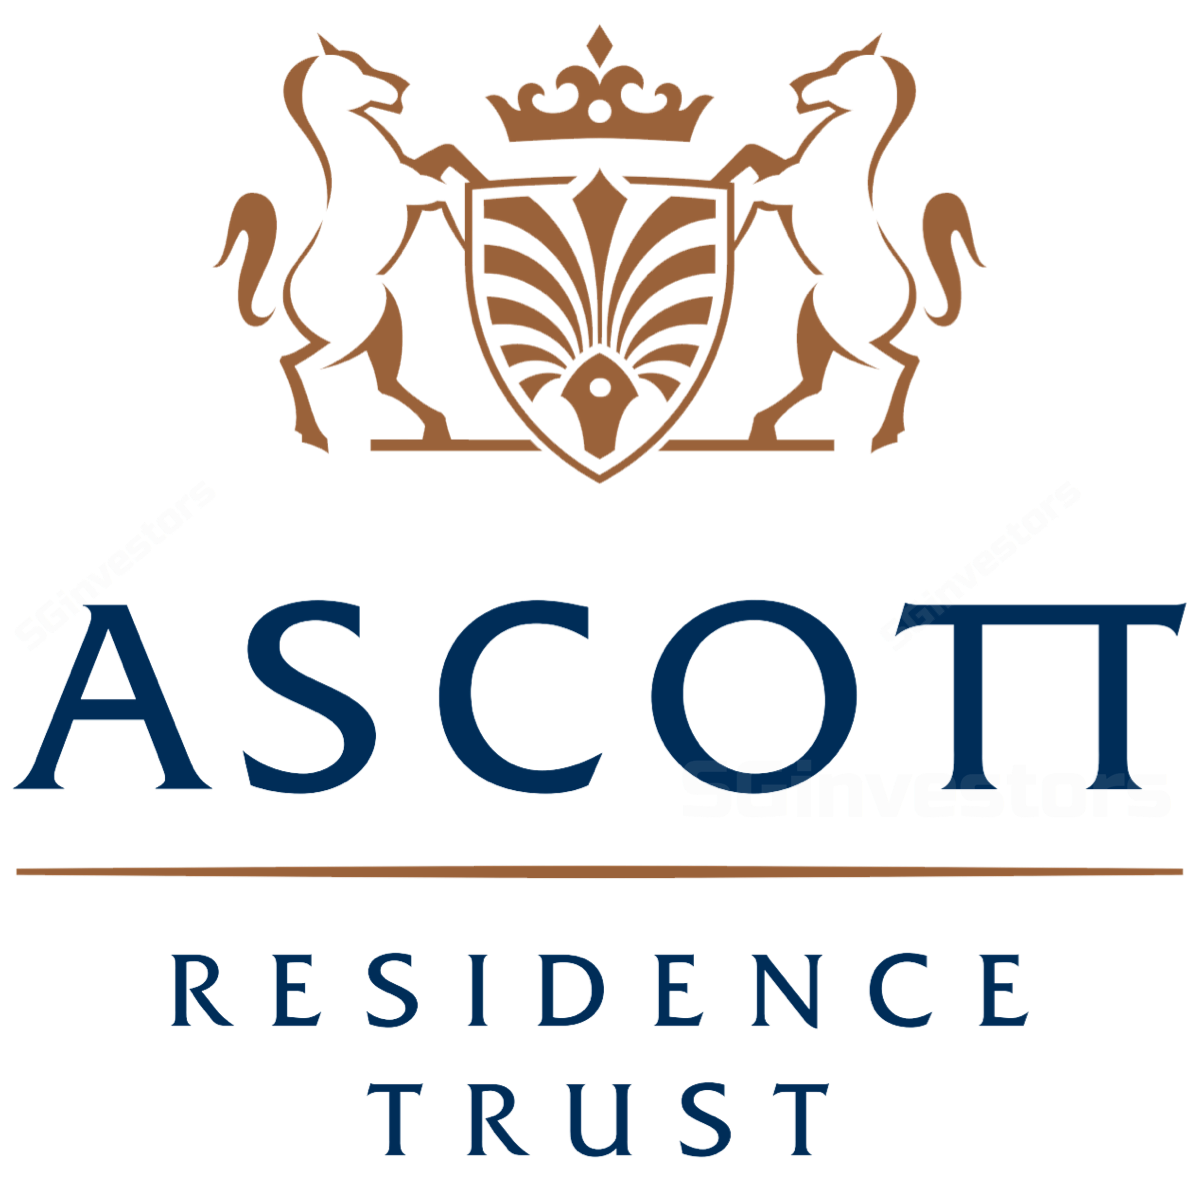 Ascott Residence Trust - DBS Group Research Research 2018-07-24:  waiting To Be Rediscovered